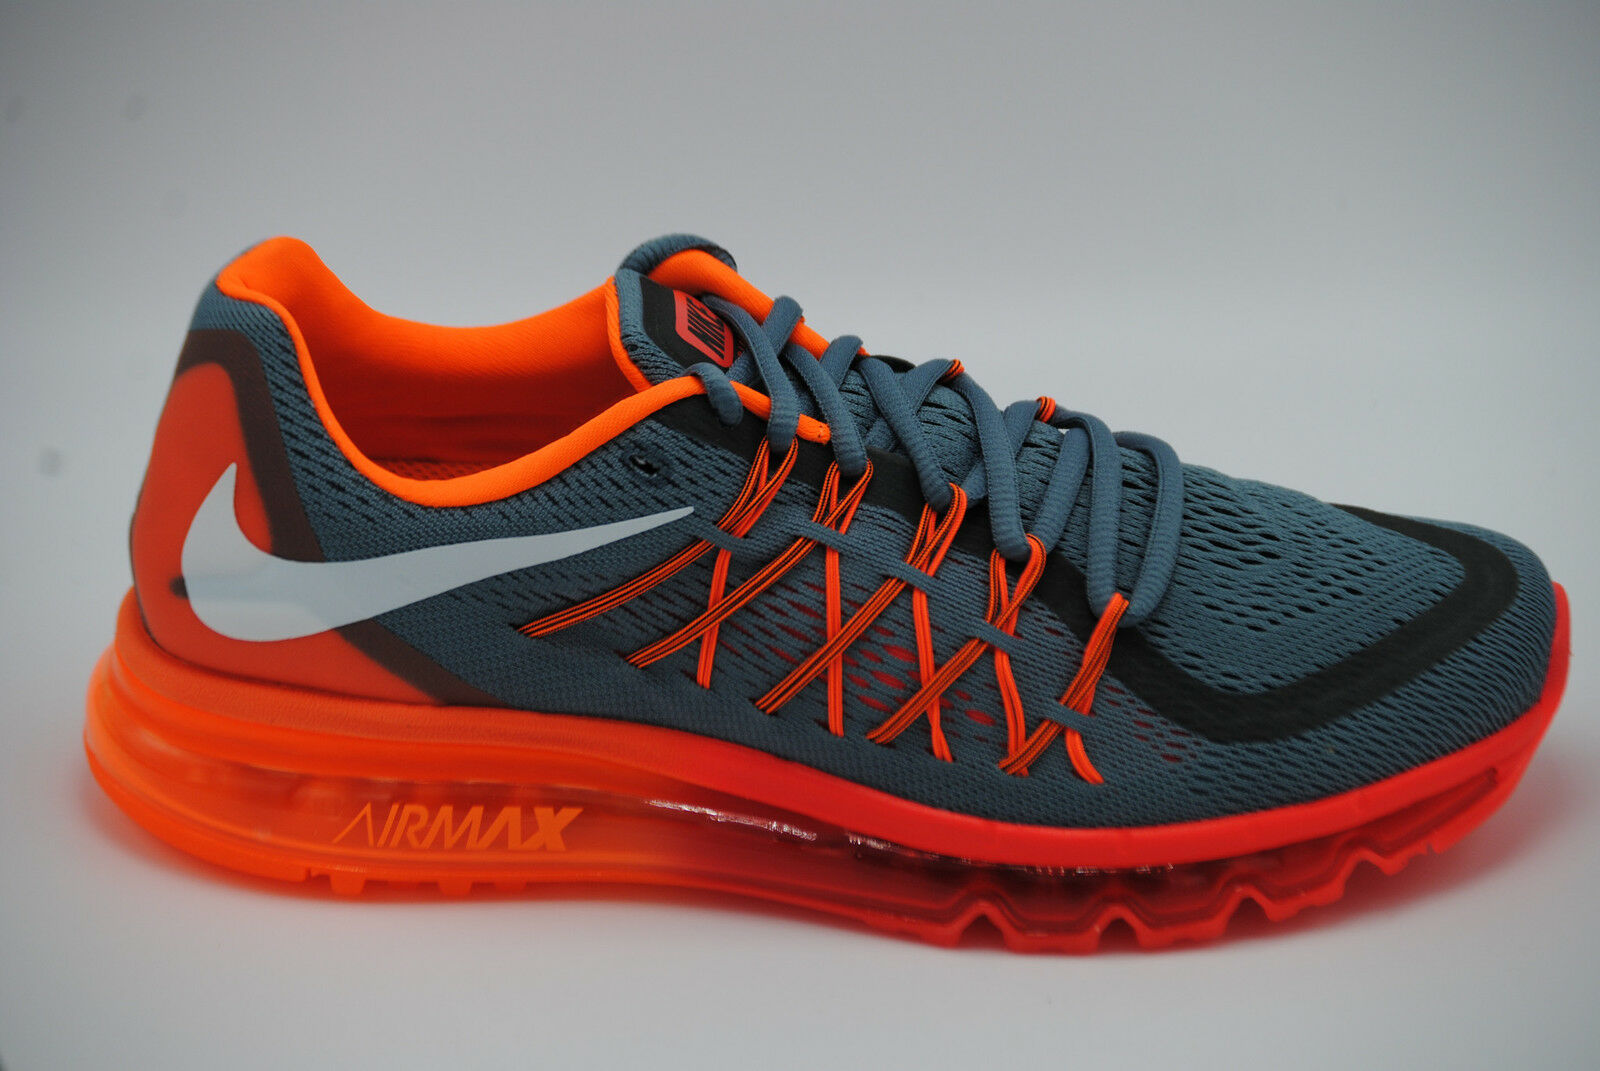 best service ddbcf c4430 well-wreapped Nike Air Max 2015 Men s running shoes 698902 418 Multiple  sizes